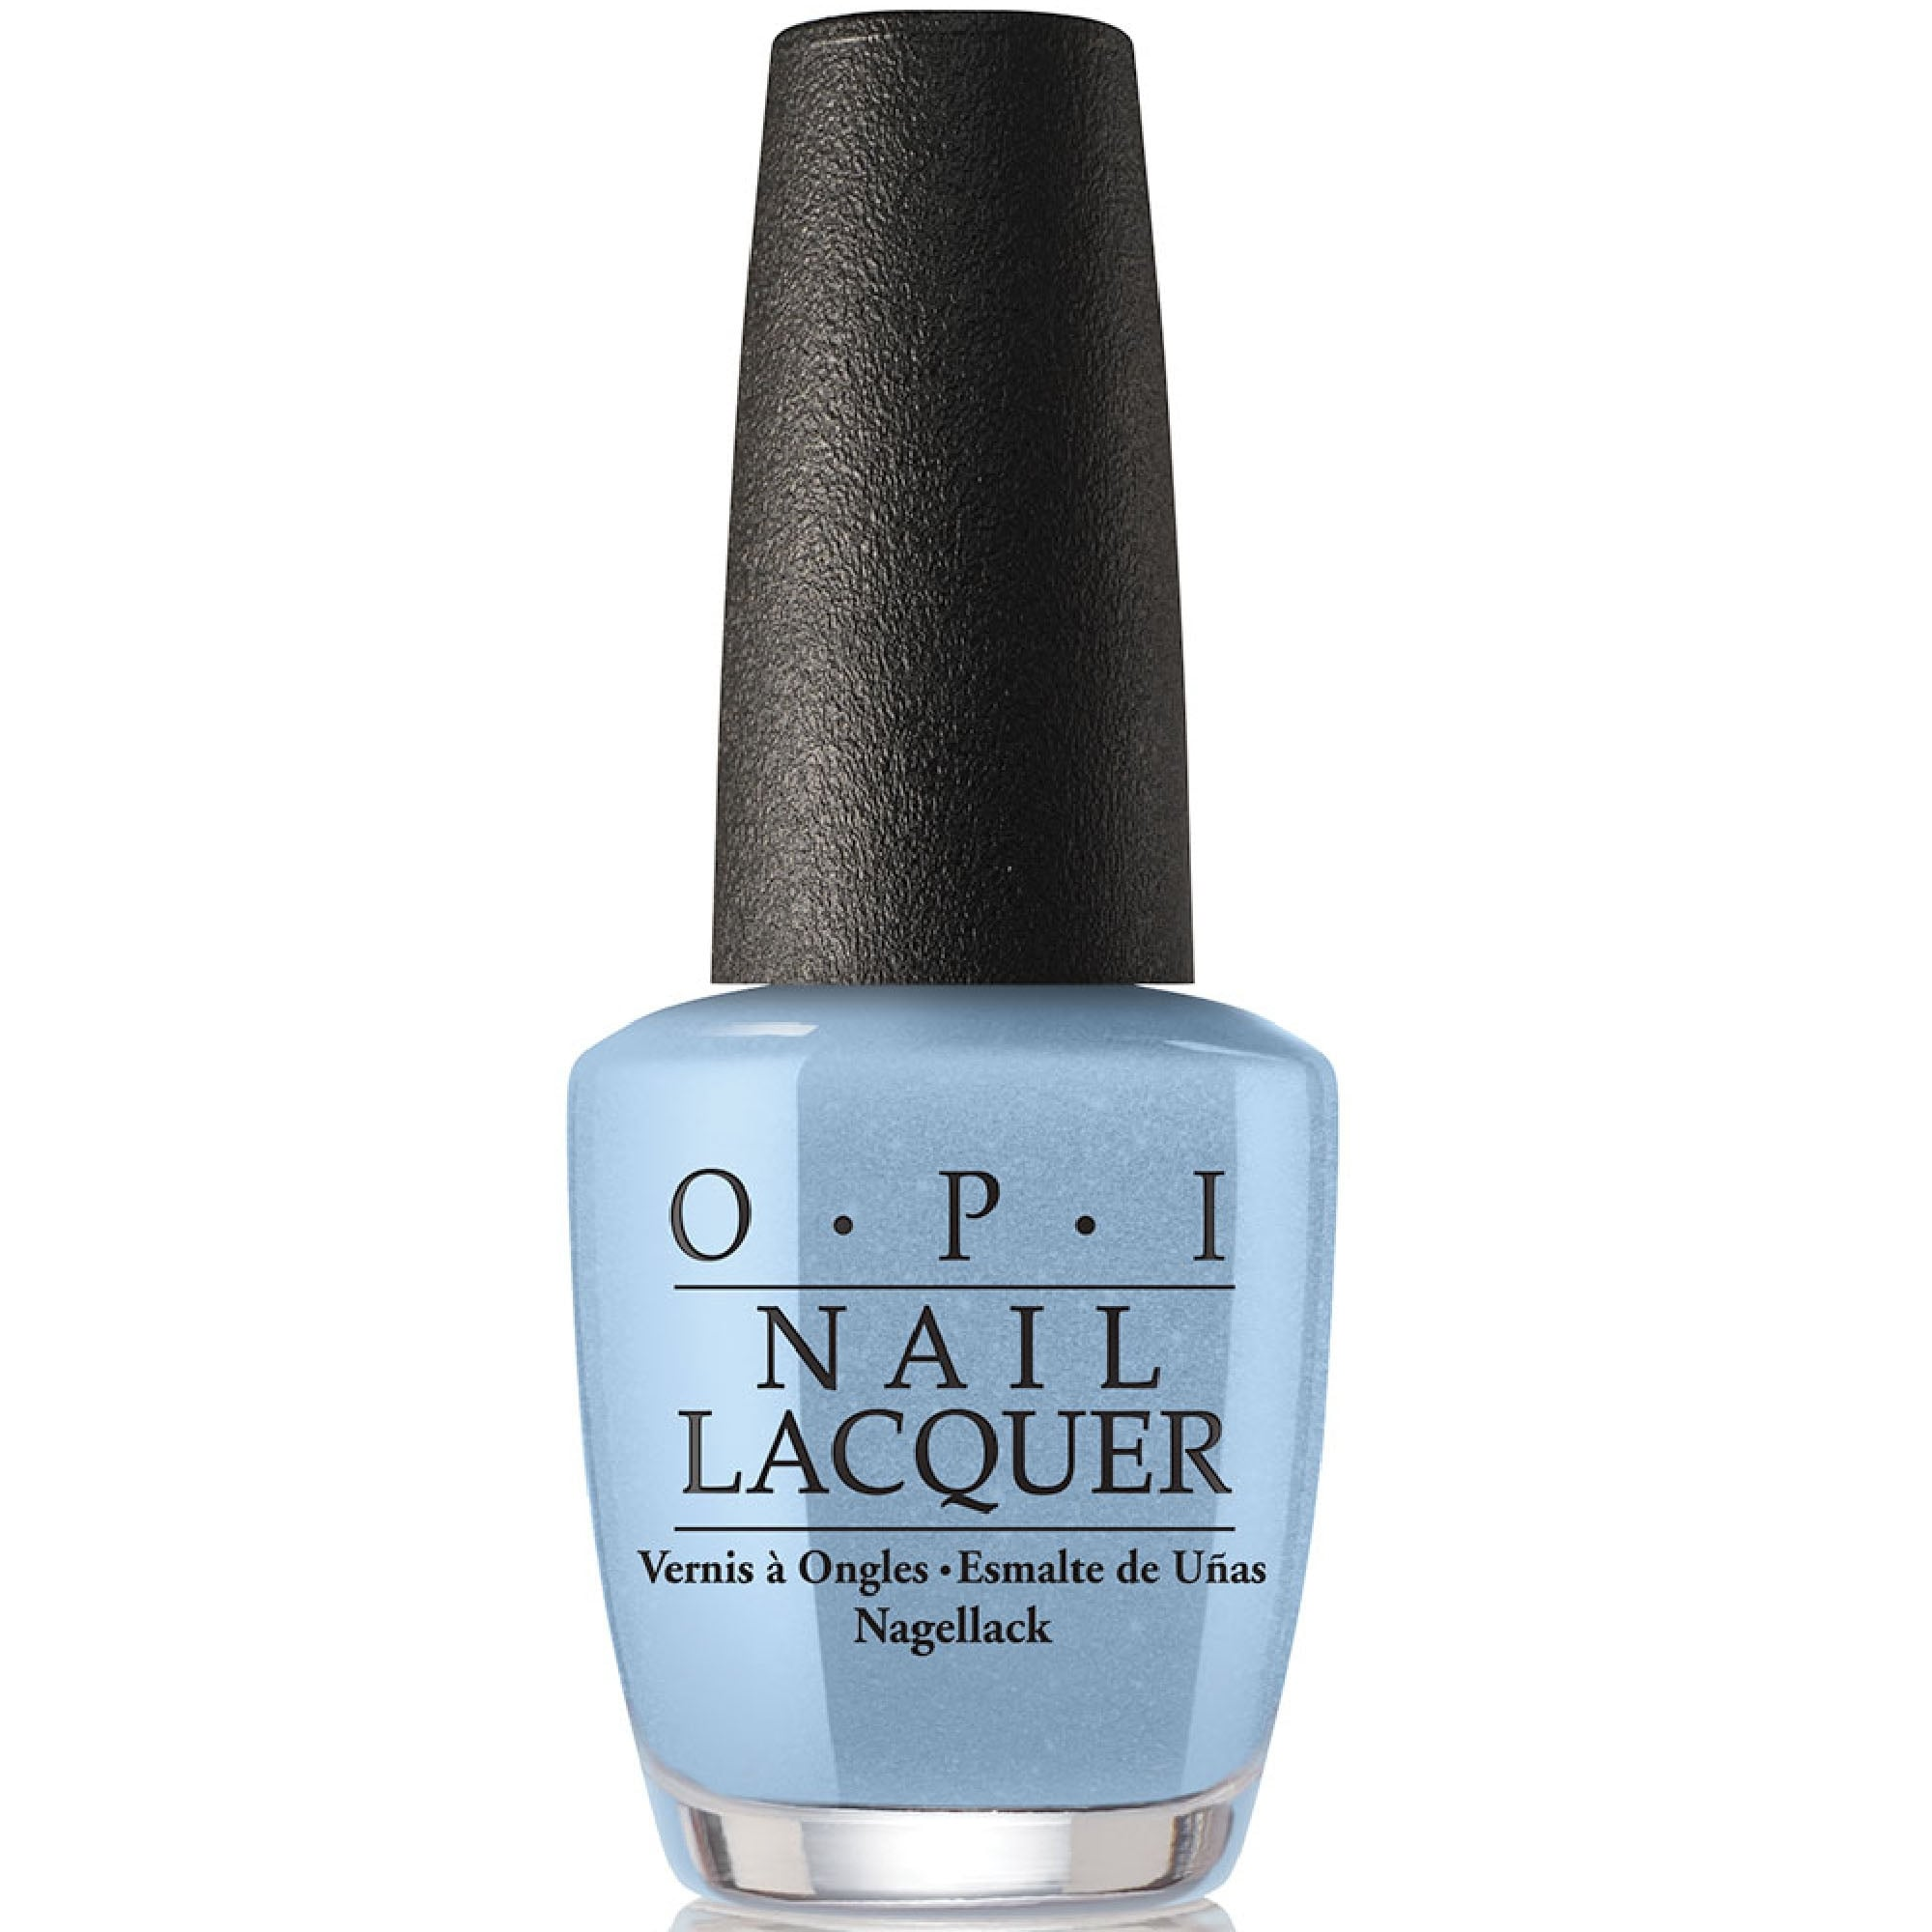 Check Out the Old Geysirs-OPI Nail Lacquer-UK-Wholesaler-Supplier-queenofnailscouk